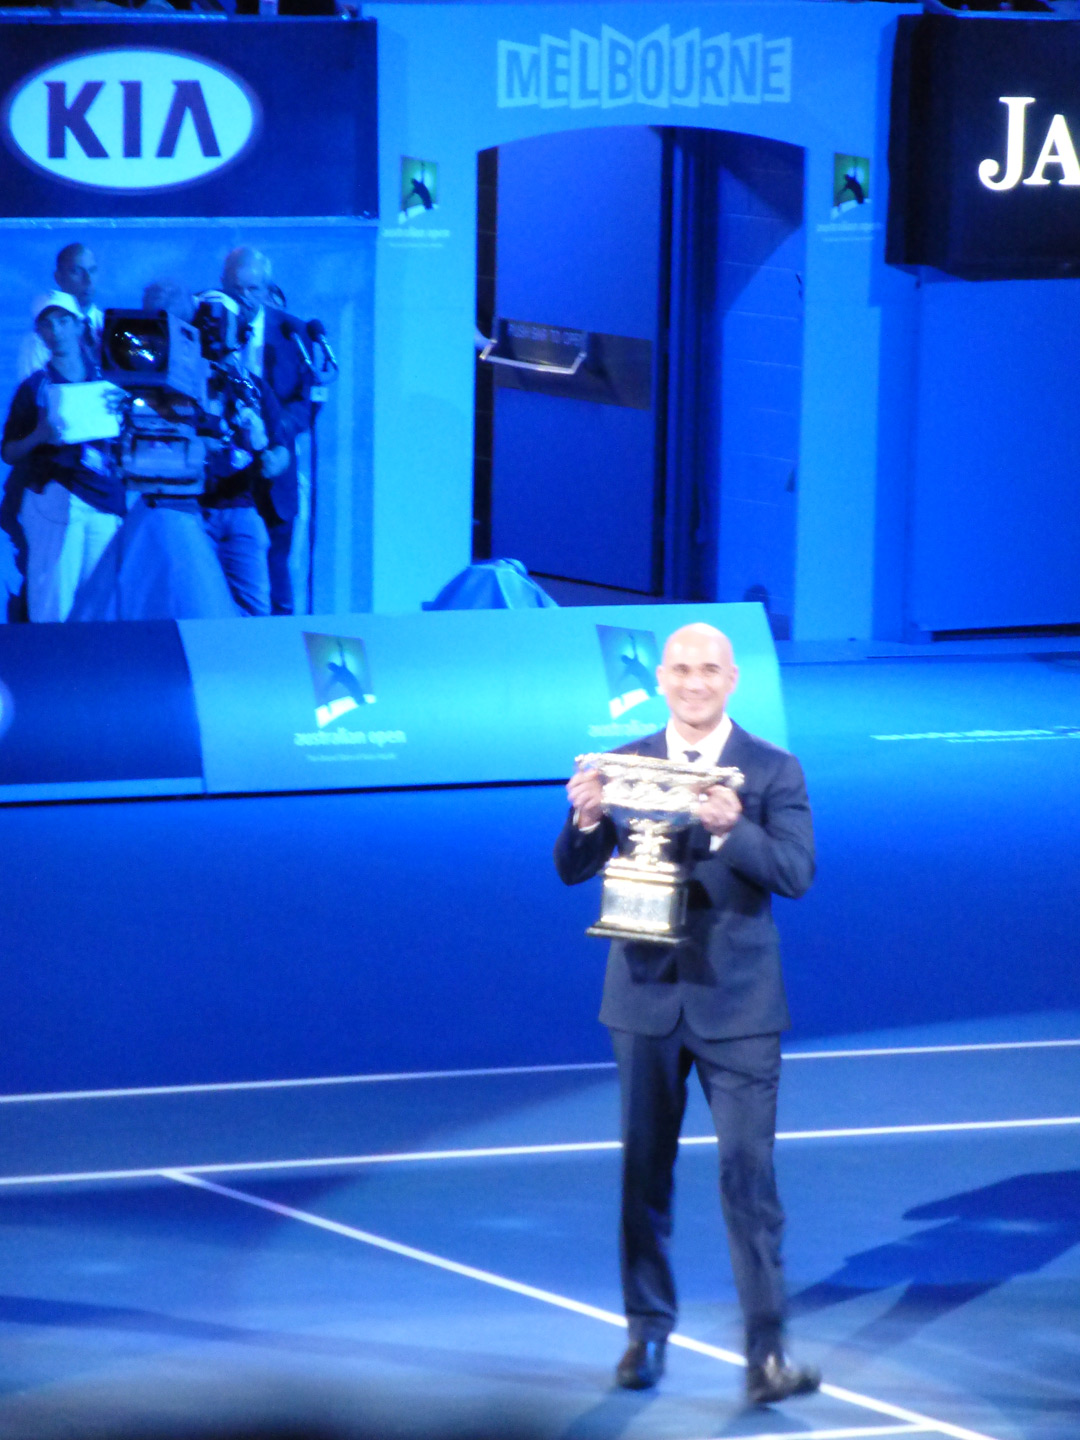 Andre Agassi brought out the trophy for display